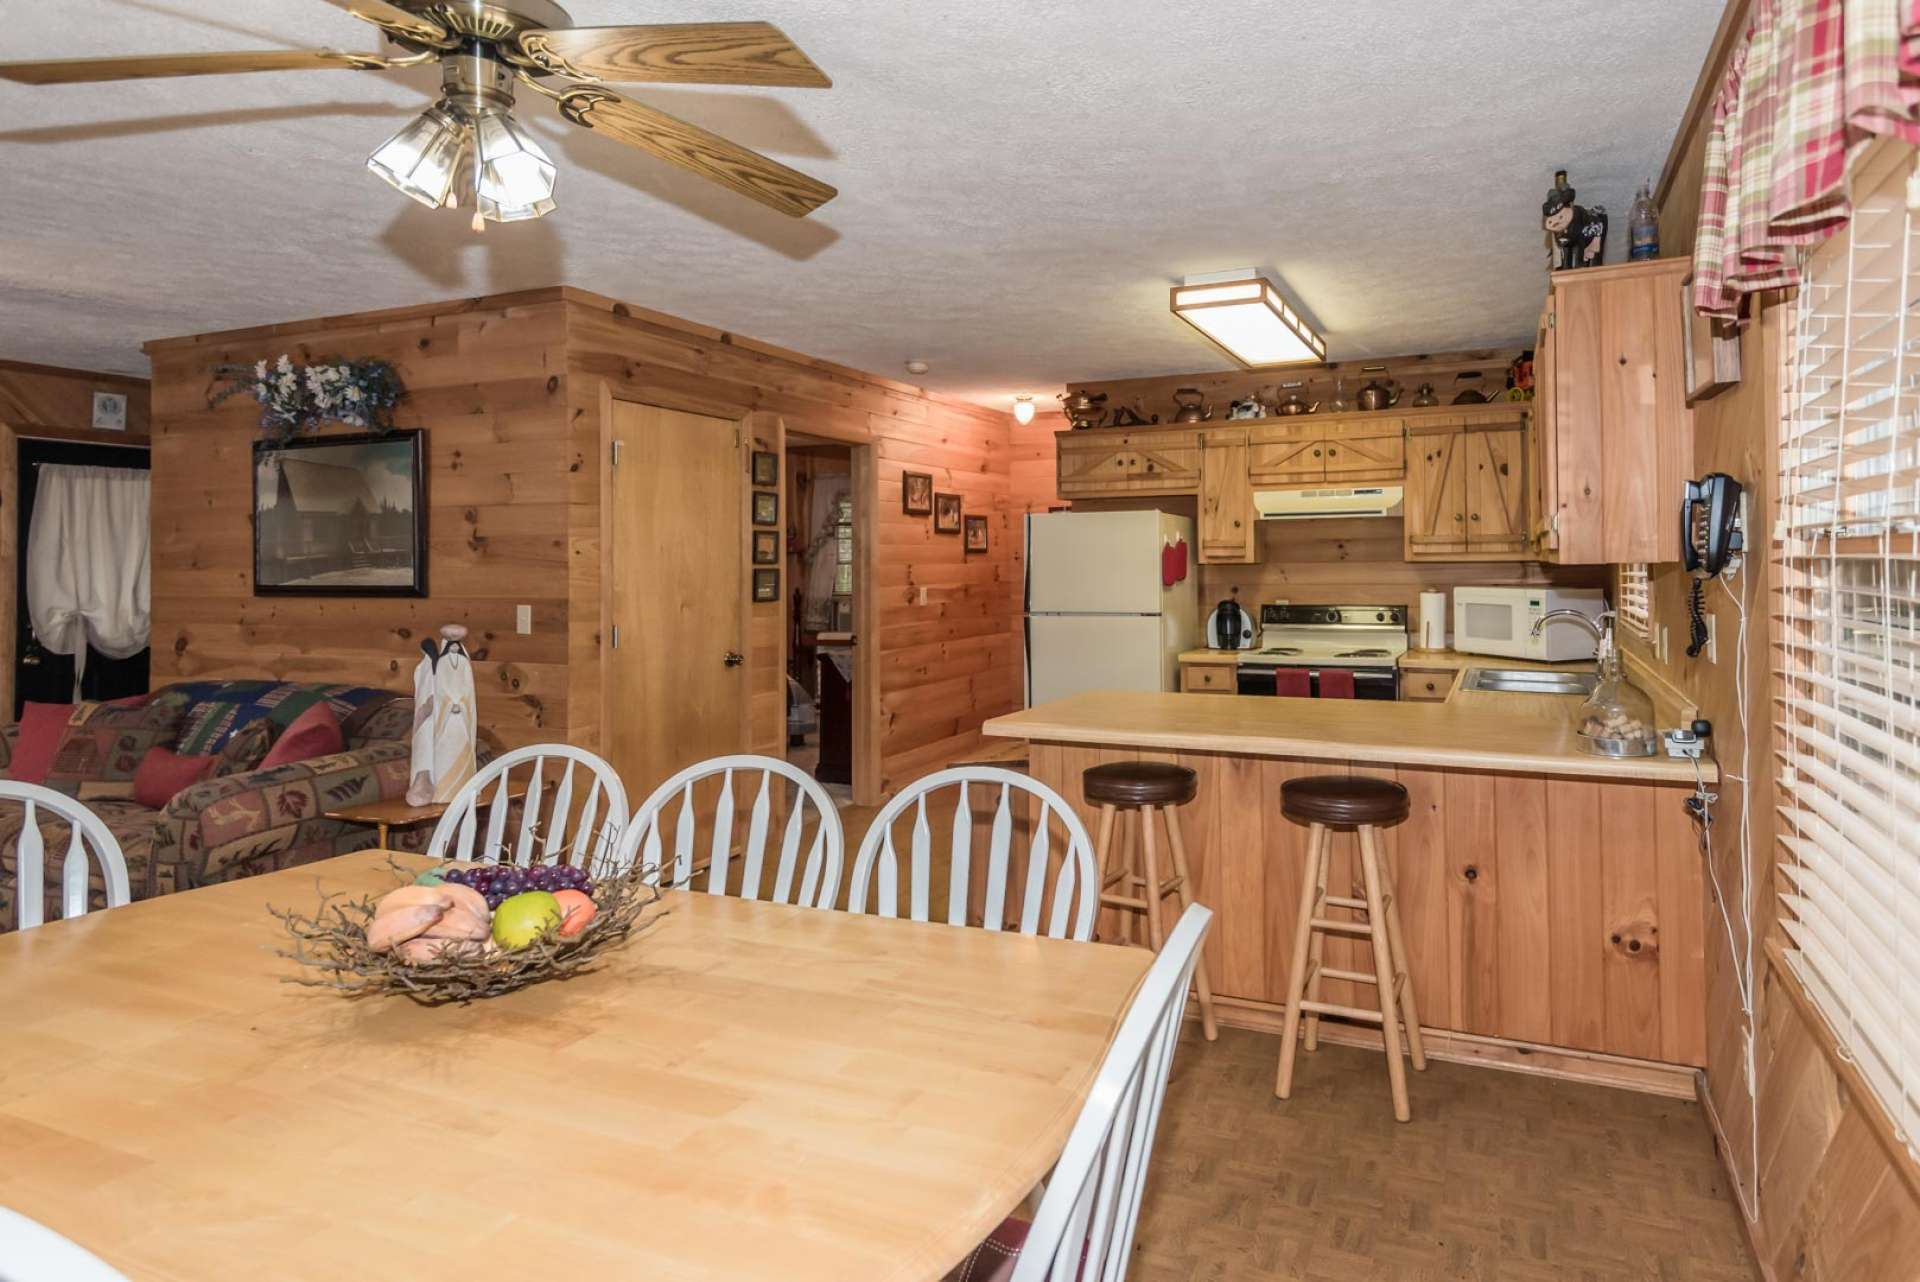 The kitchen area is efficient with ample work and storage space.  There is also plenty of room for help in the kitchen.